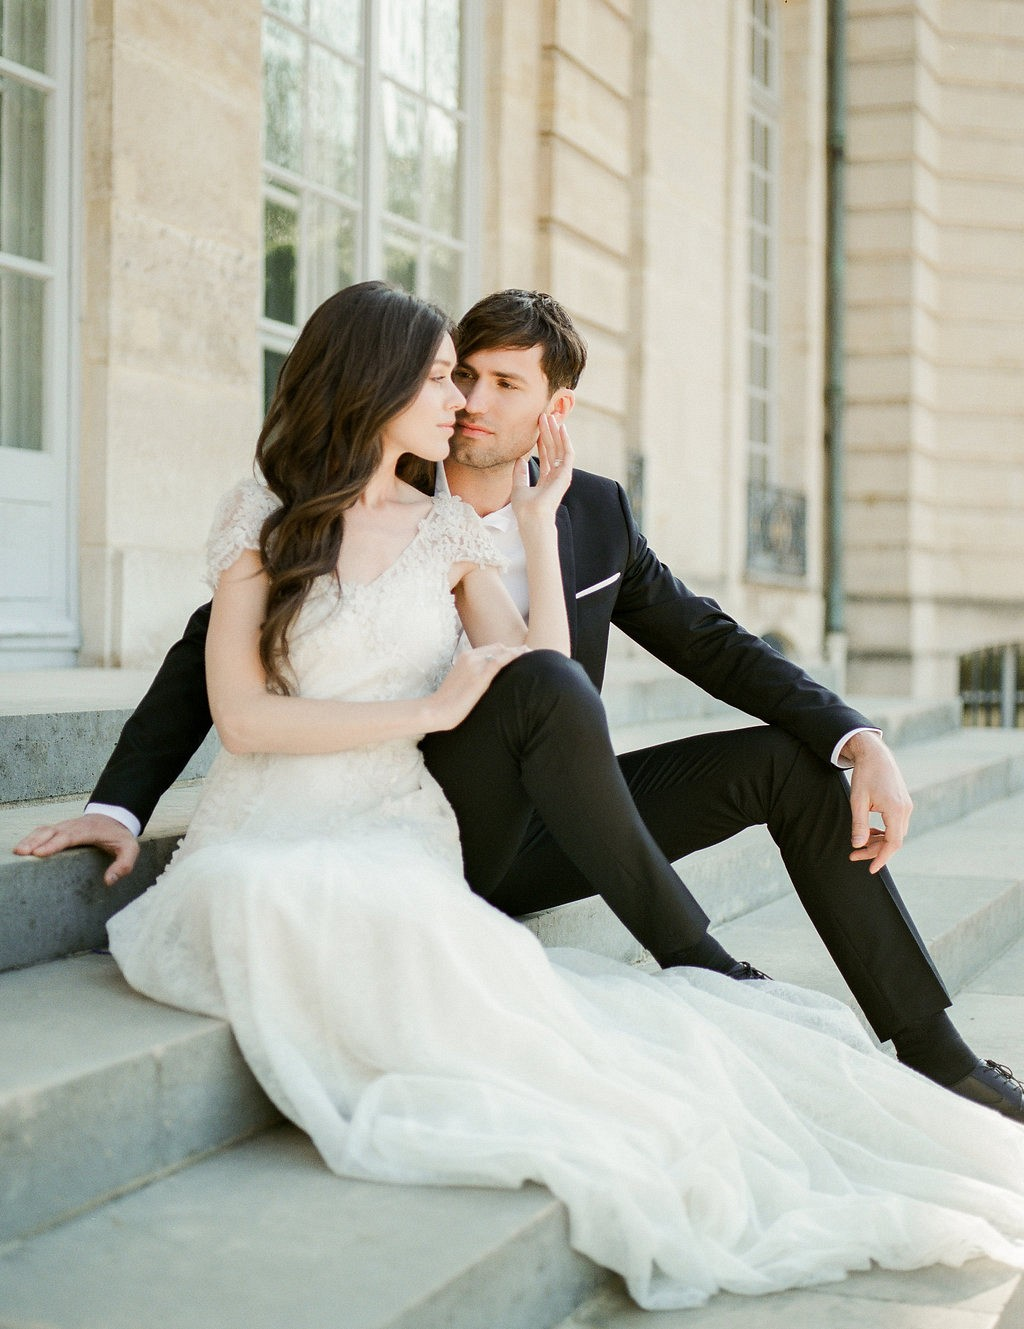 Sophisticated Parisian Wedding at the Rodin Museum